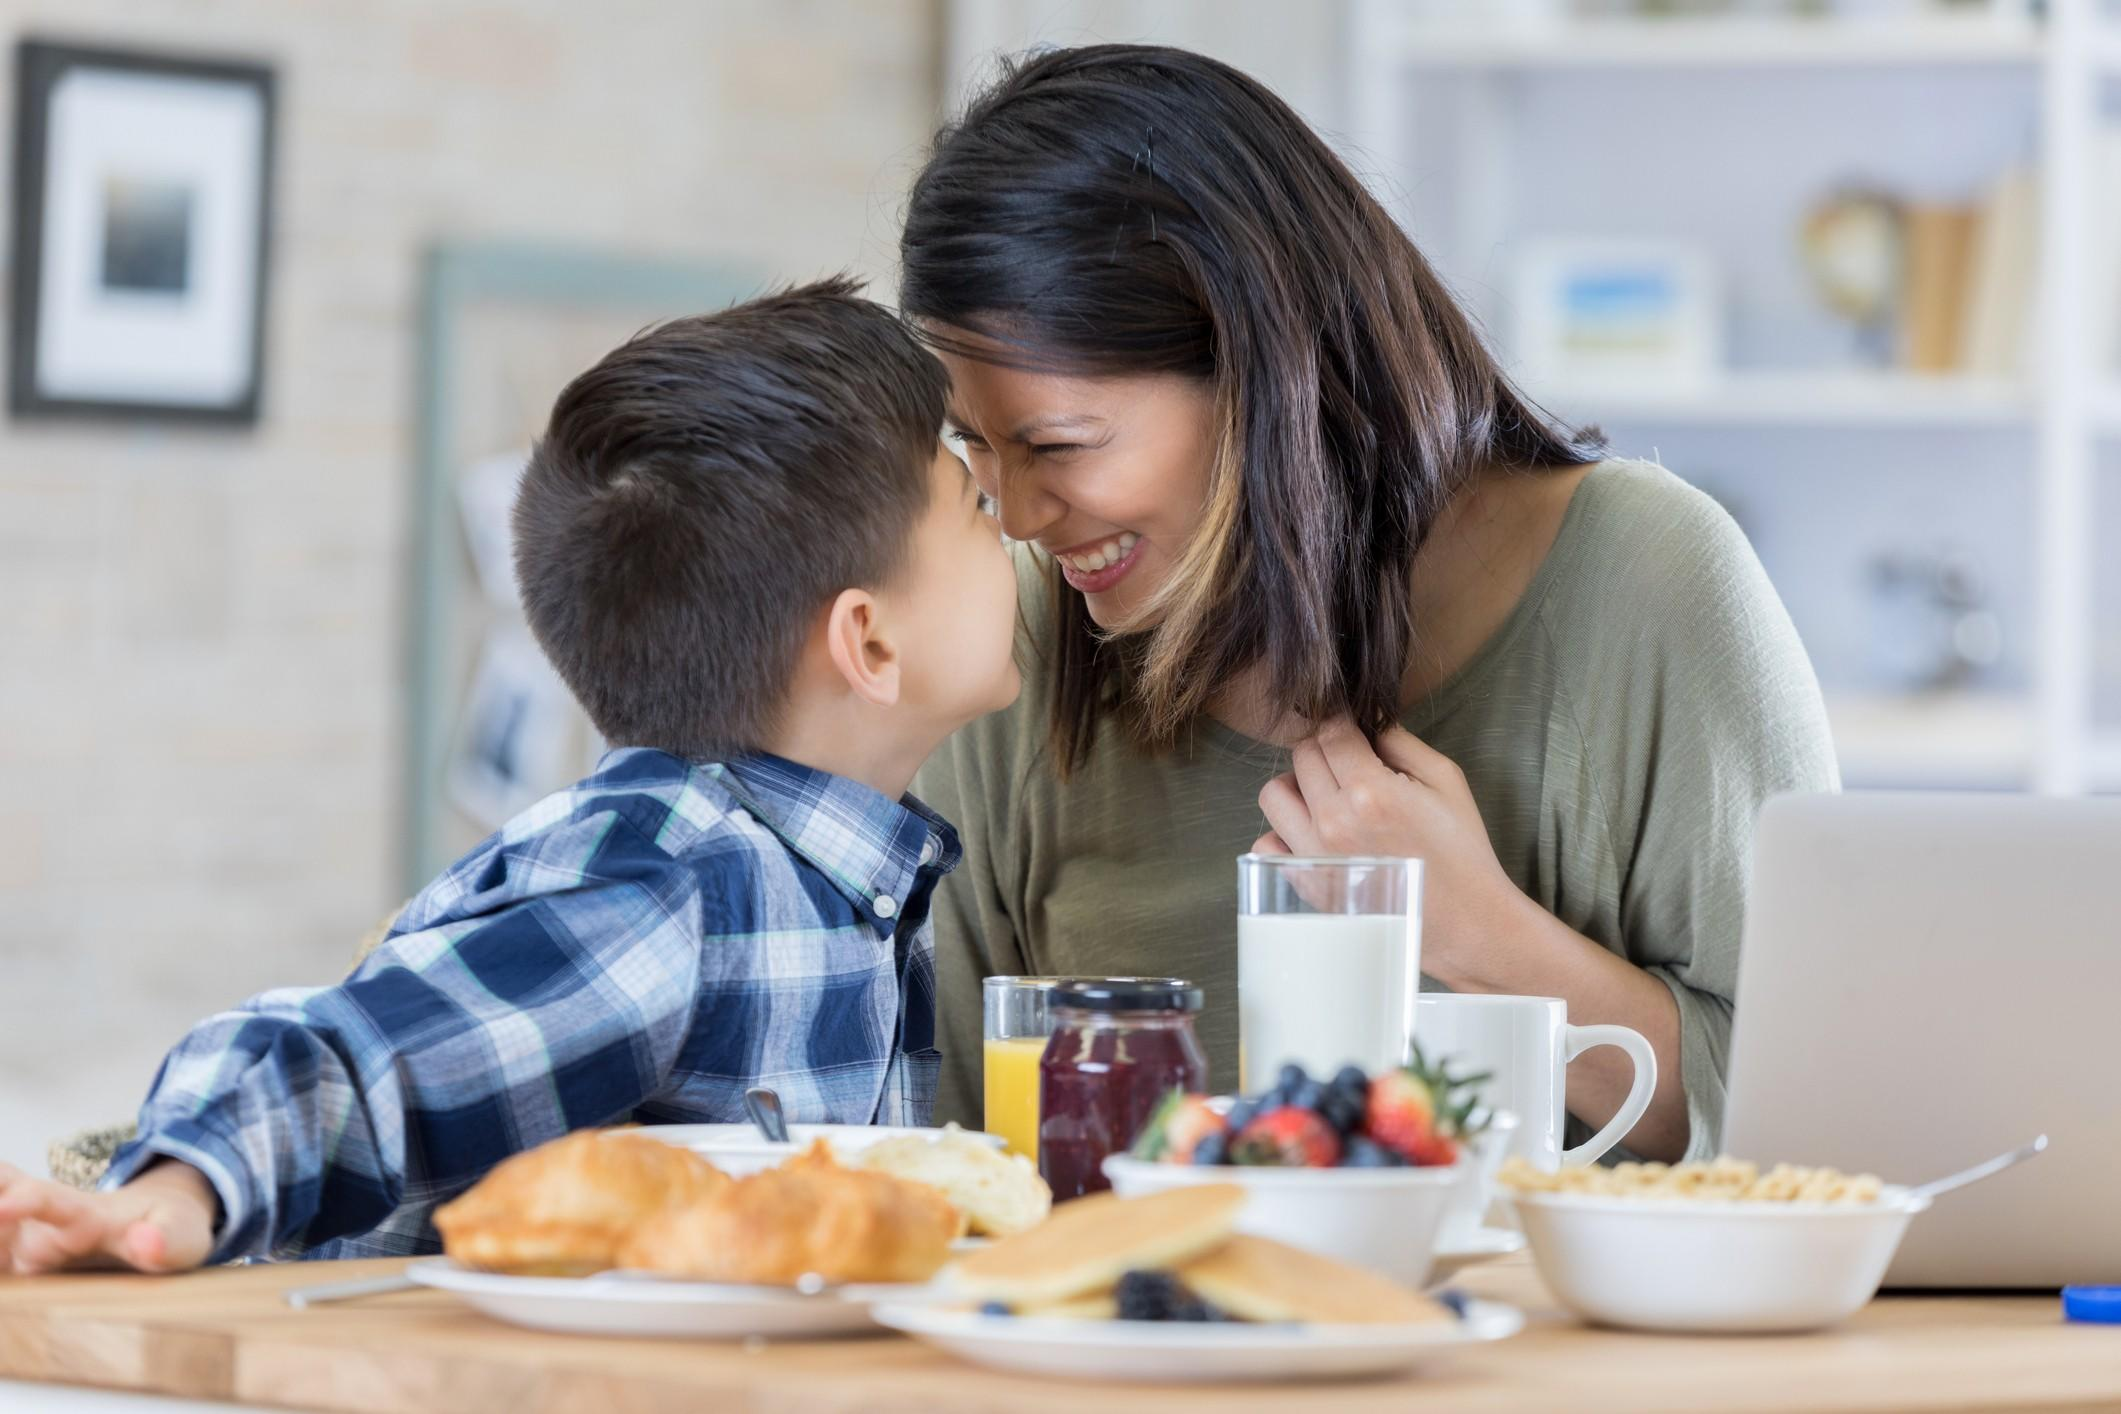 Child being fed by mother and affectionate moment